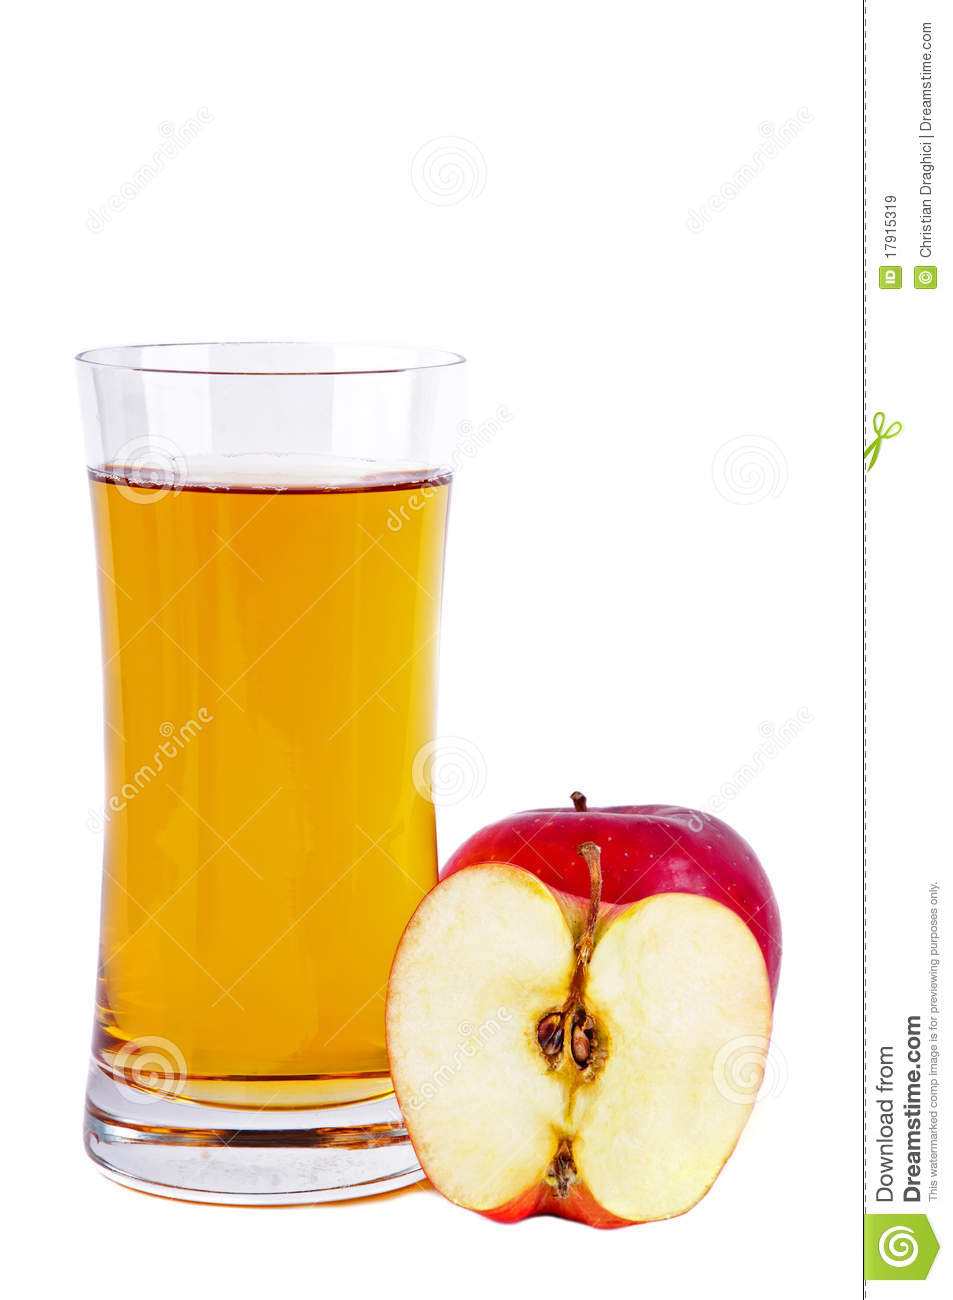 Go Back   Images For   Apple Juice Clipart